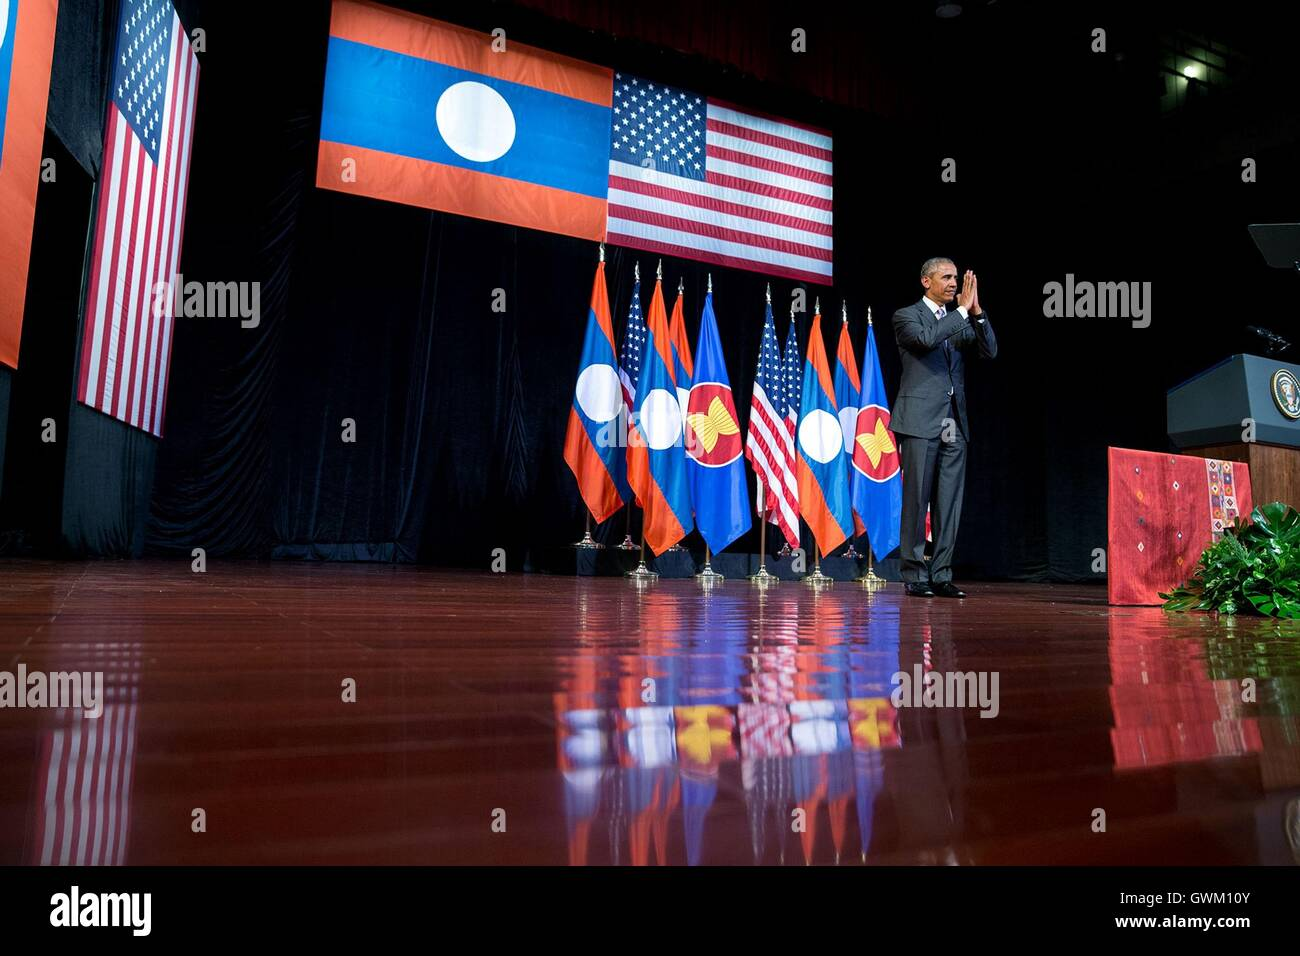 U.S President Barack Obama concludes his remarks at the Lao National Cultural Hall September 5, 2016 in Vientiane, - Stock Image